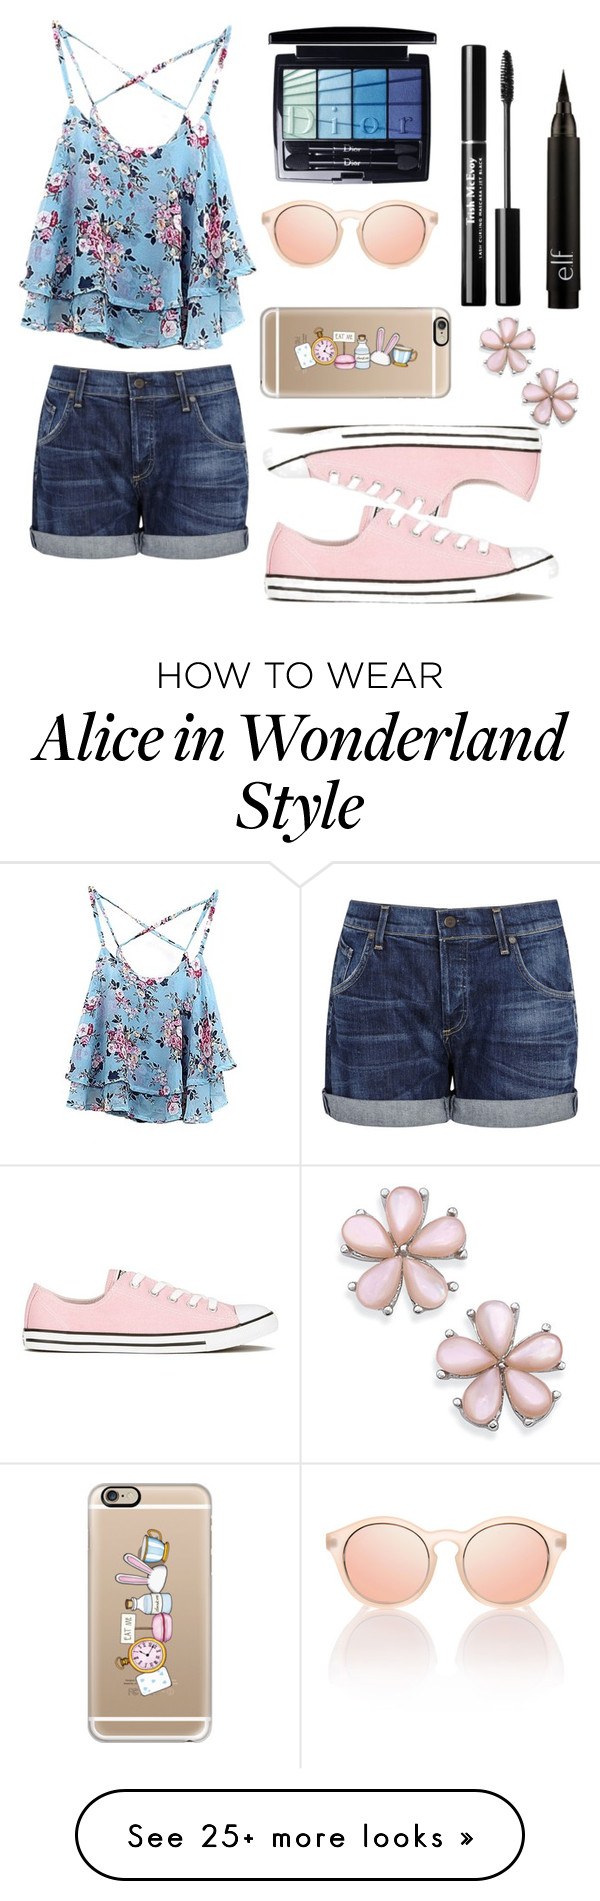 """Spring into summer look!"" by andreita02 on Polyvore featuring WithChic, Citizens of Humanity, Converse, Christian Dior, Le Specs and Casetify"